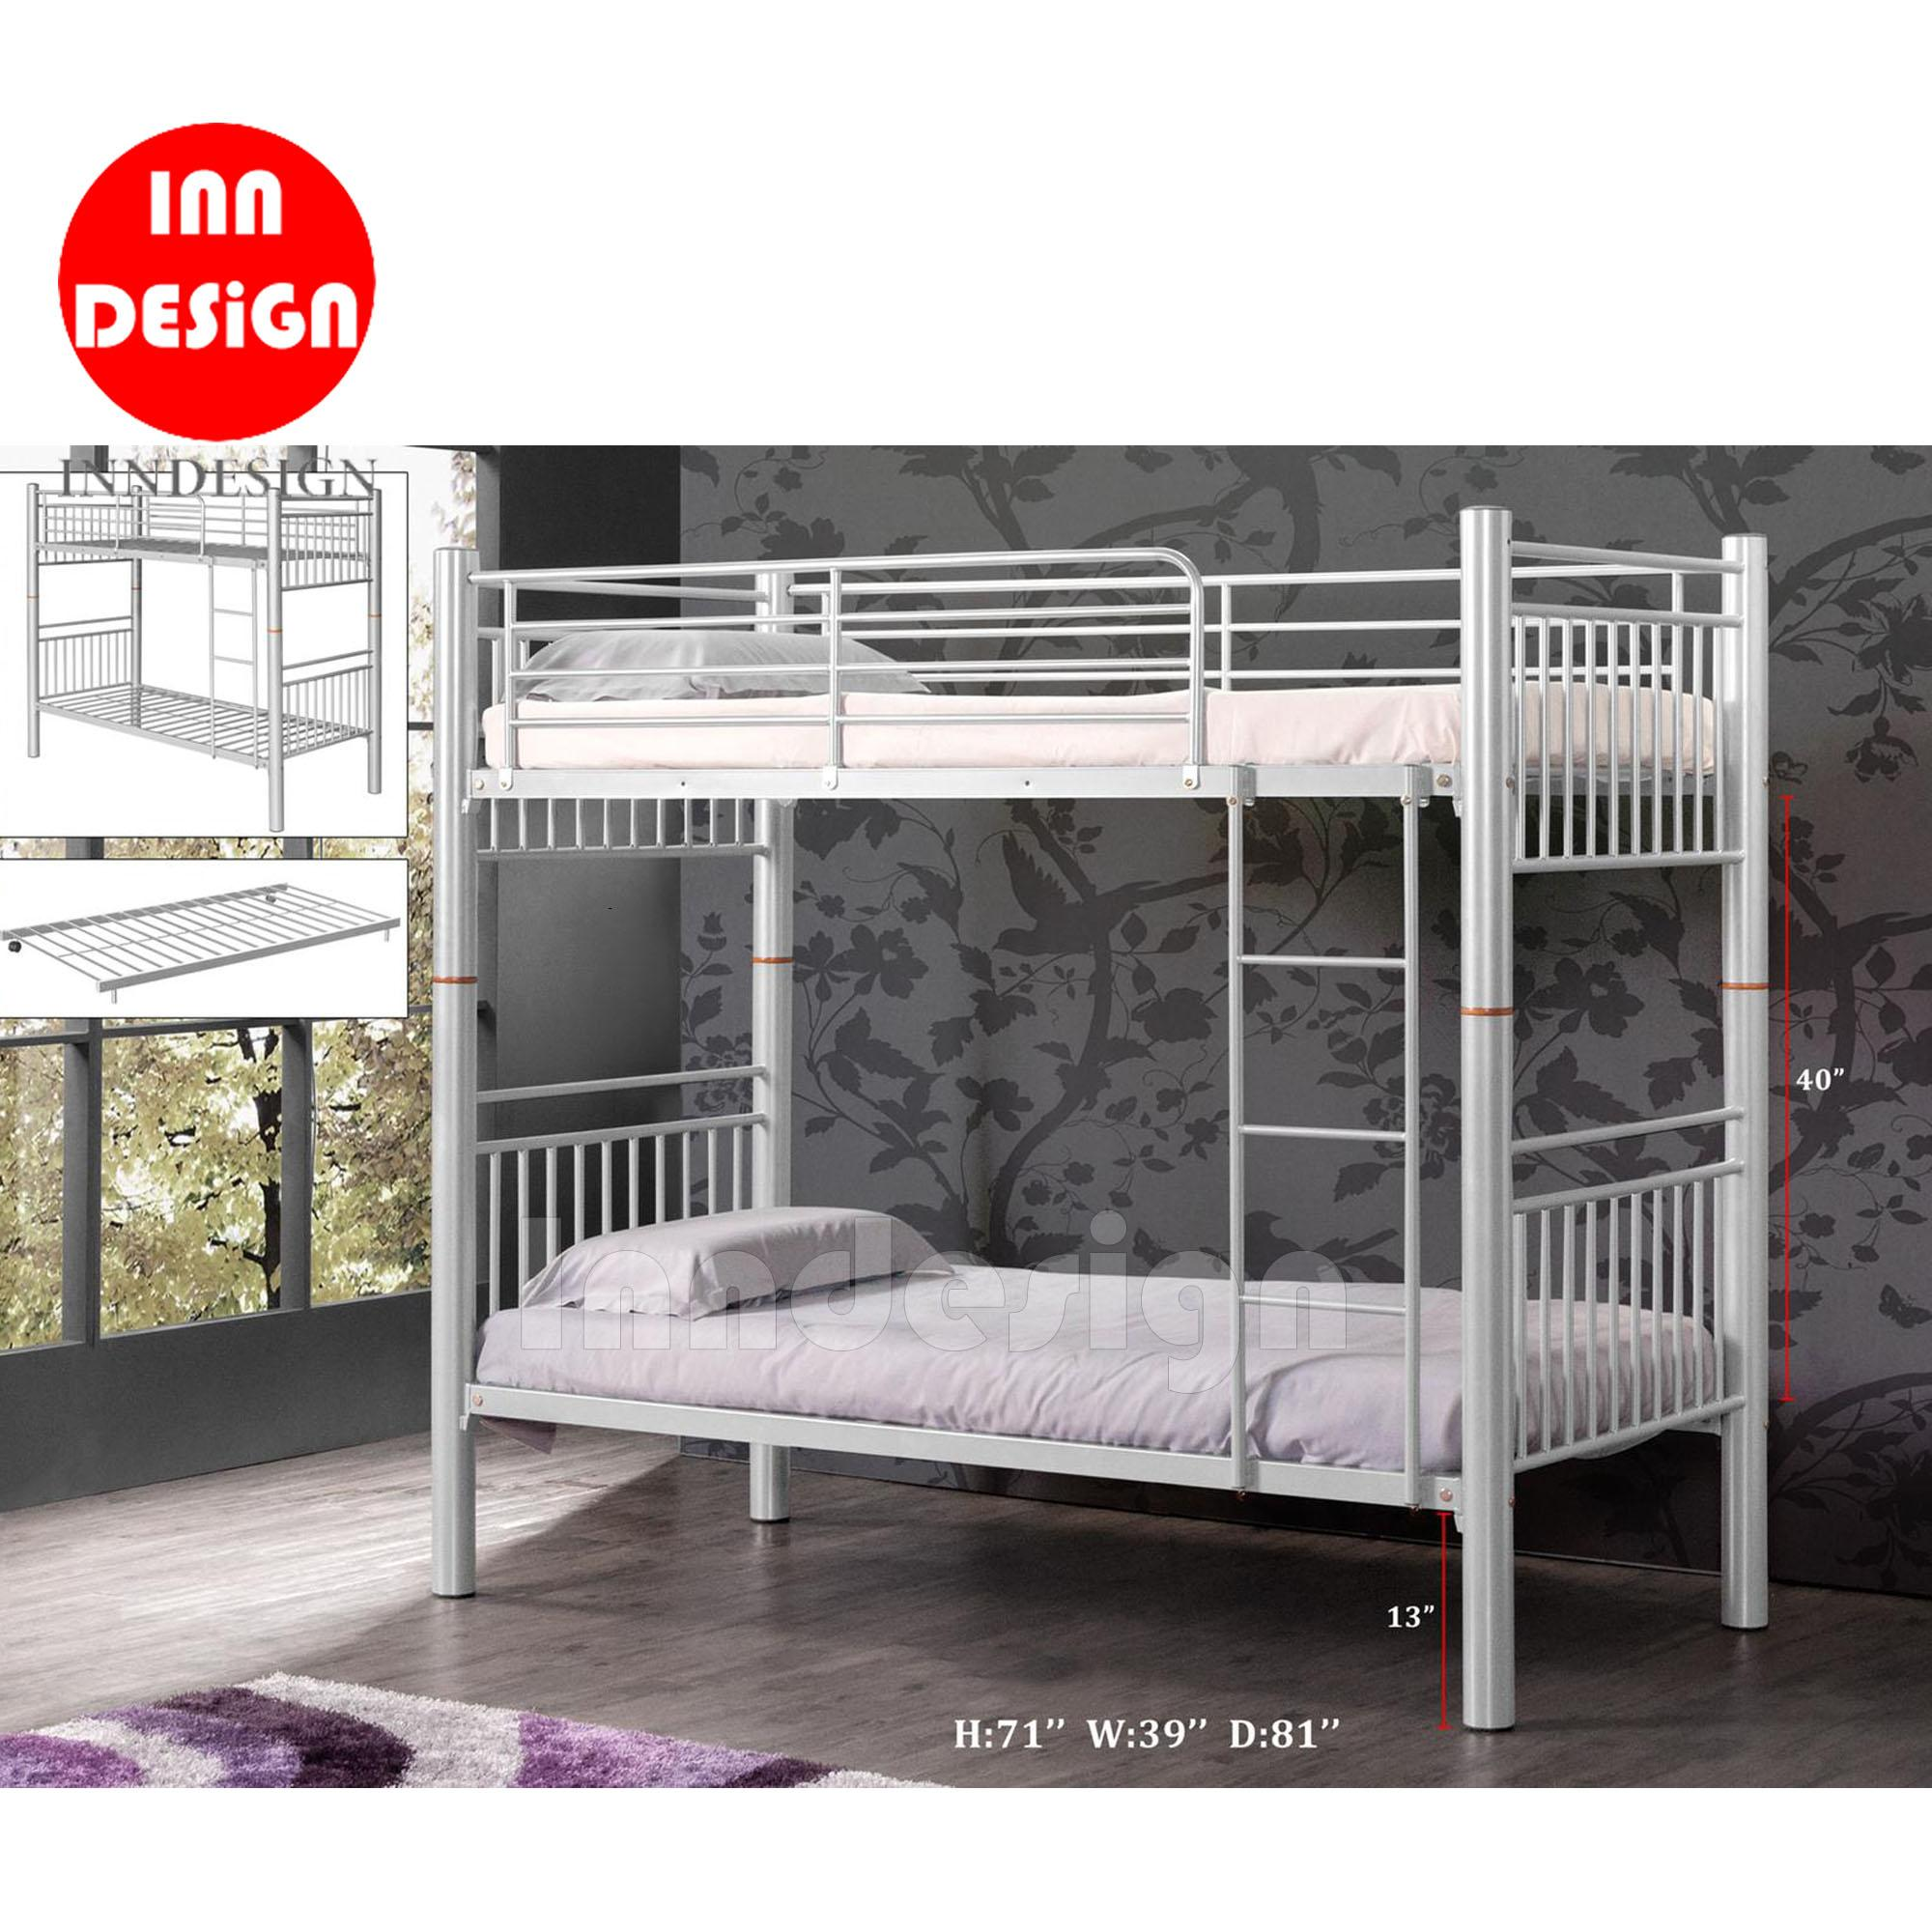 Double Deck Bed Single Size / Metal Bed Frame (Silver)